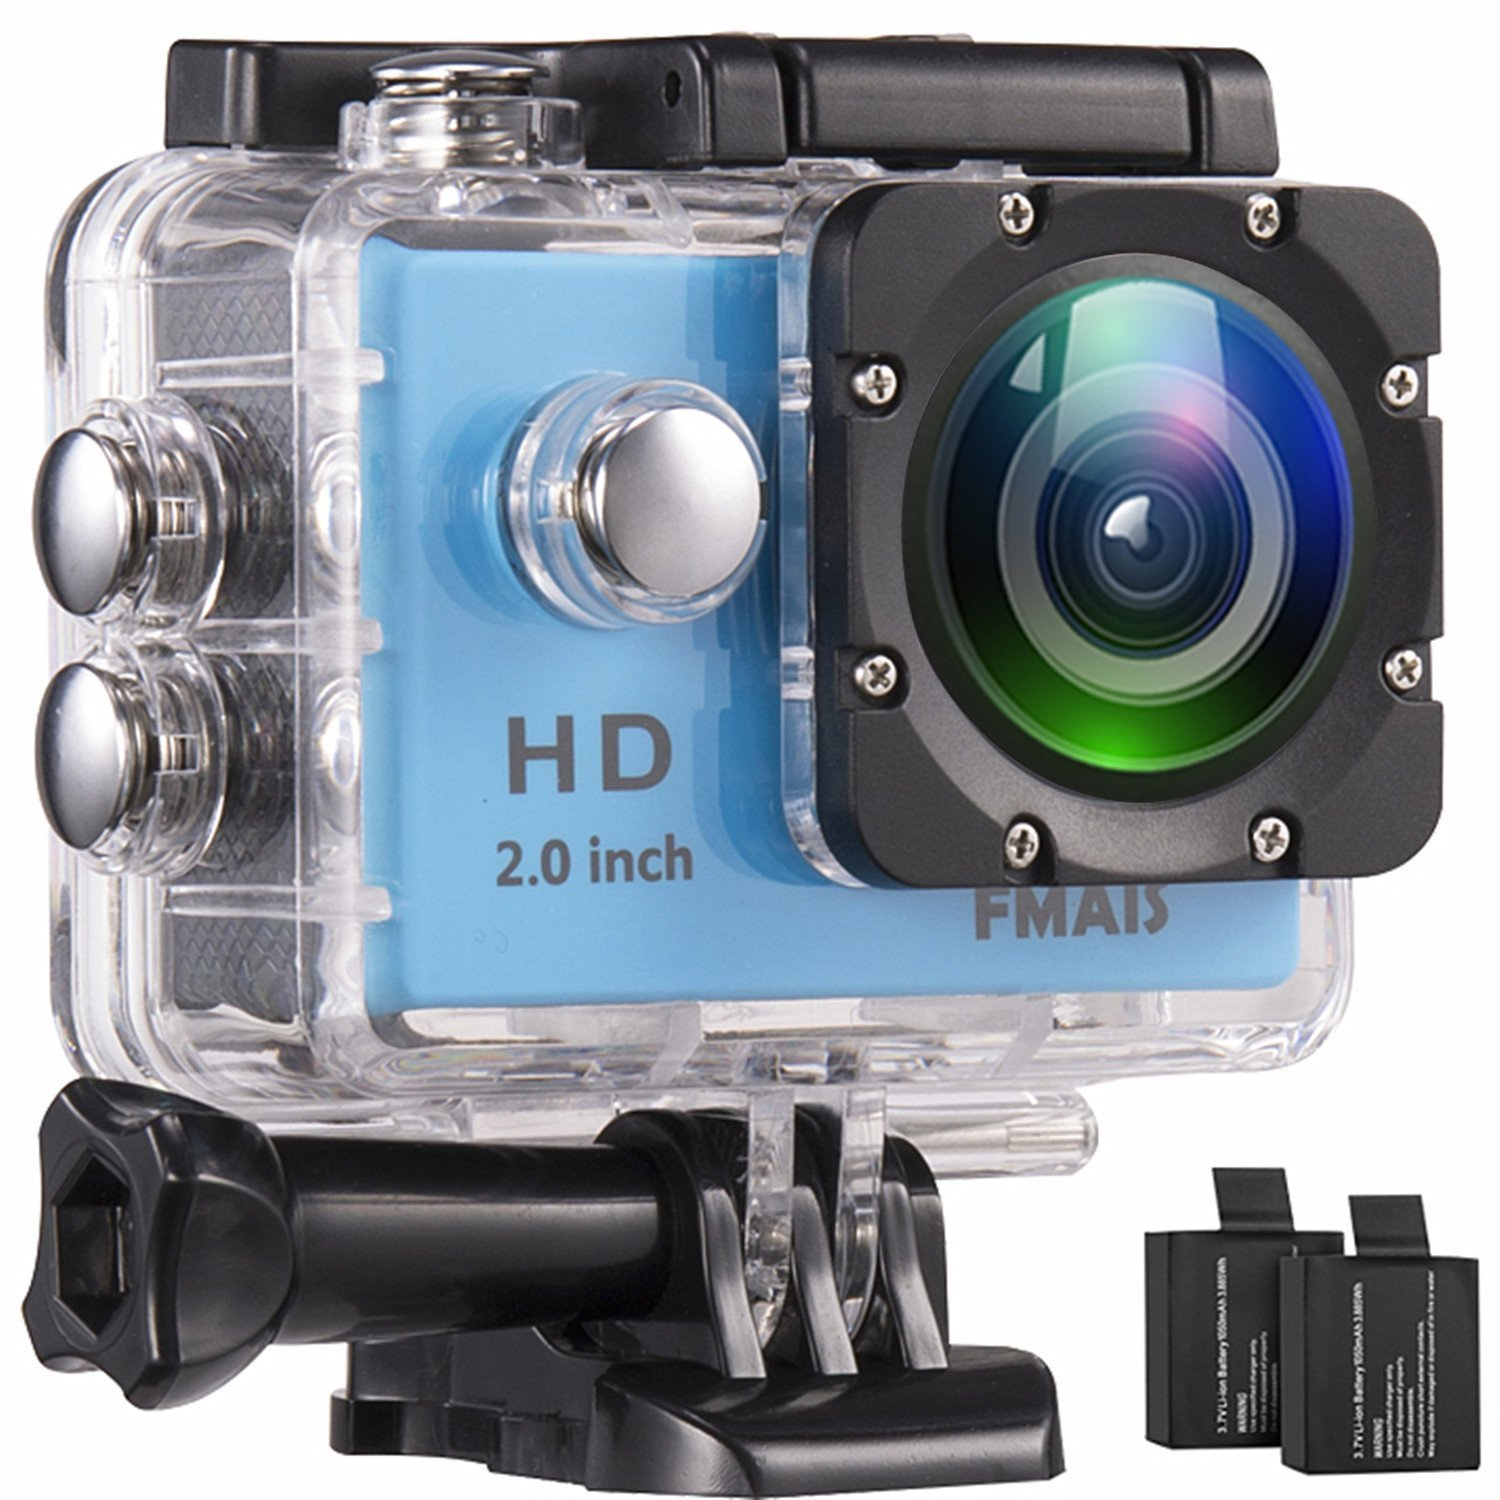 FMAIS Action Camera 2.0 Inch LCD Full HD 1080P Camcorder Underwater 30m/98ft Waterproof Sports Camera with 2 Rechargeable Batteries and Mounting Accessories Kit (Blue)